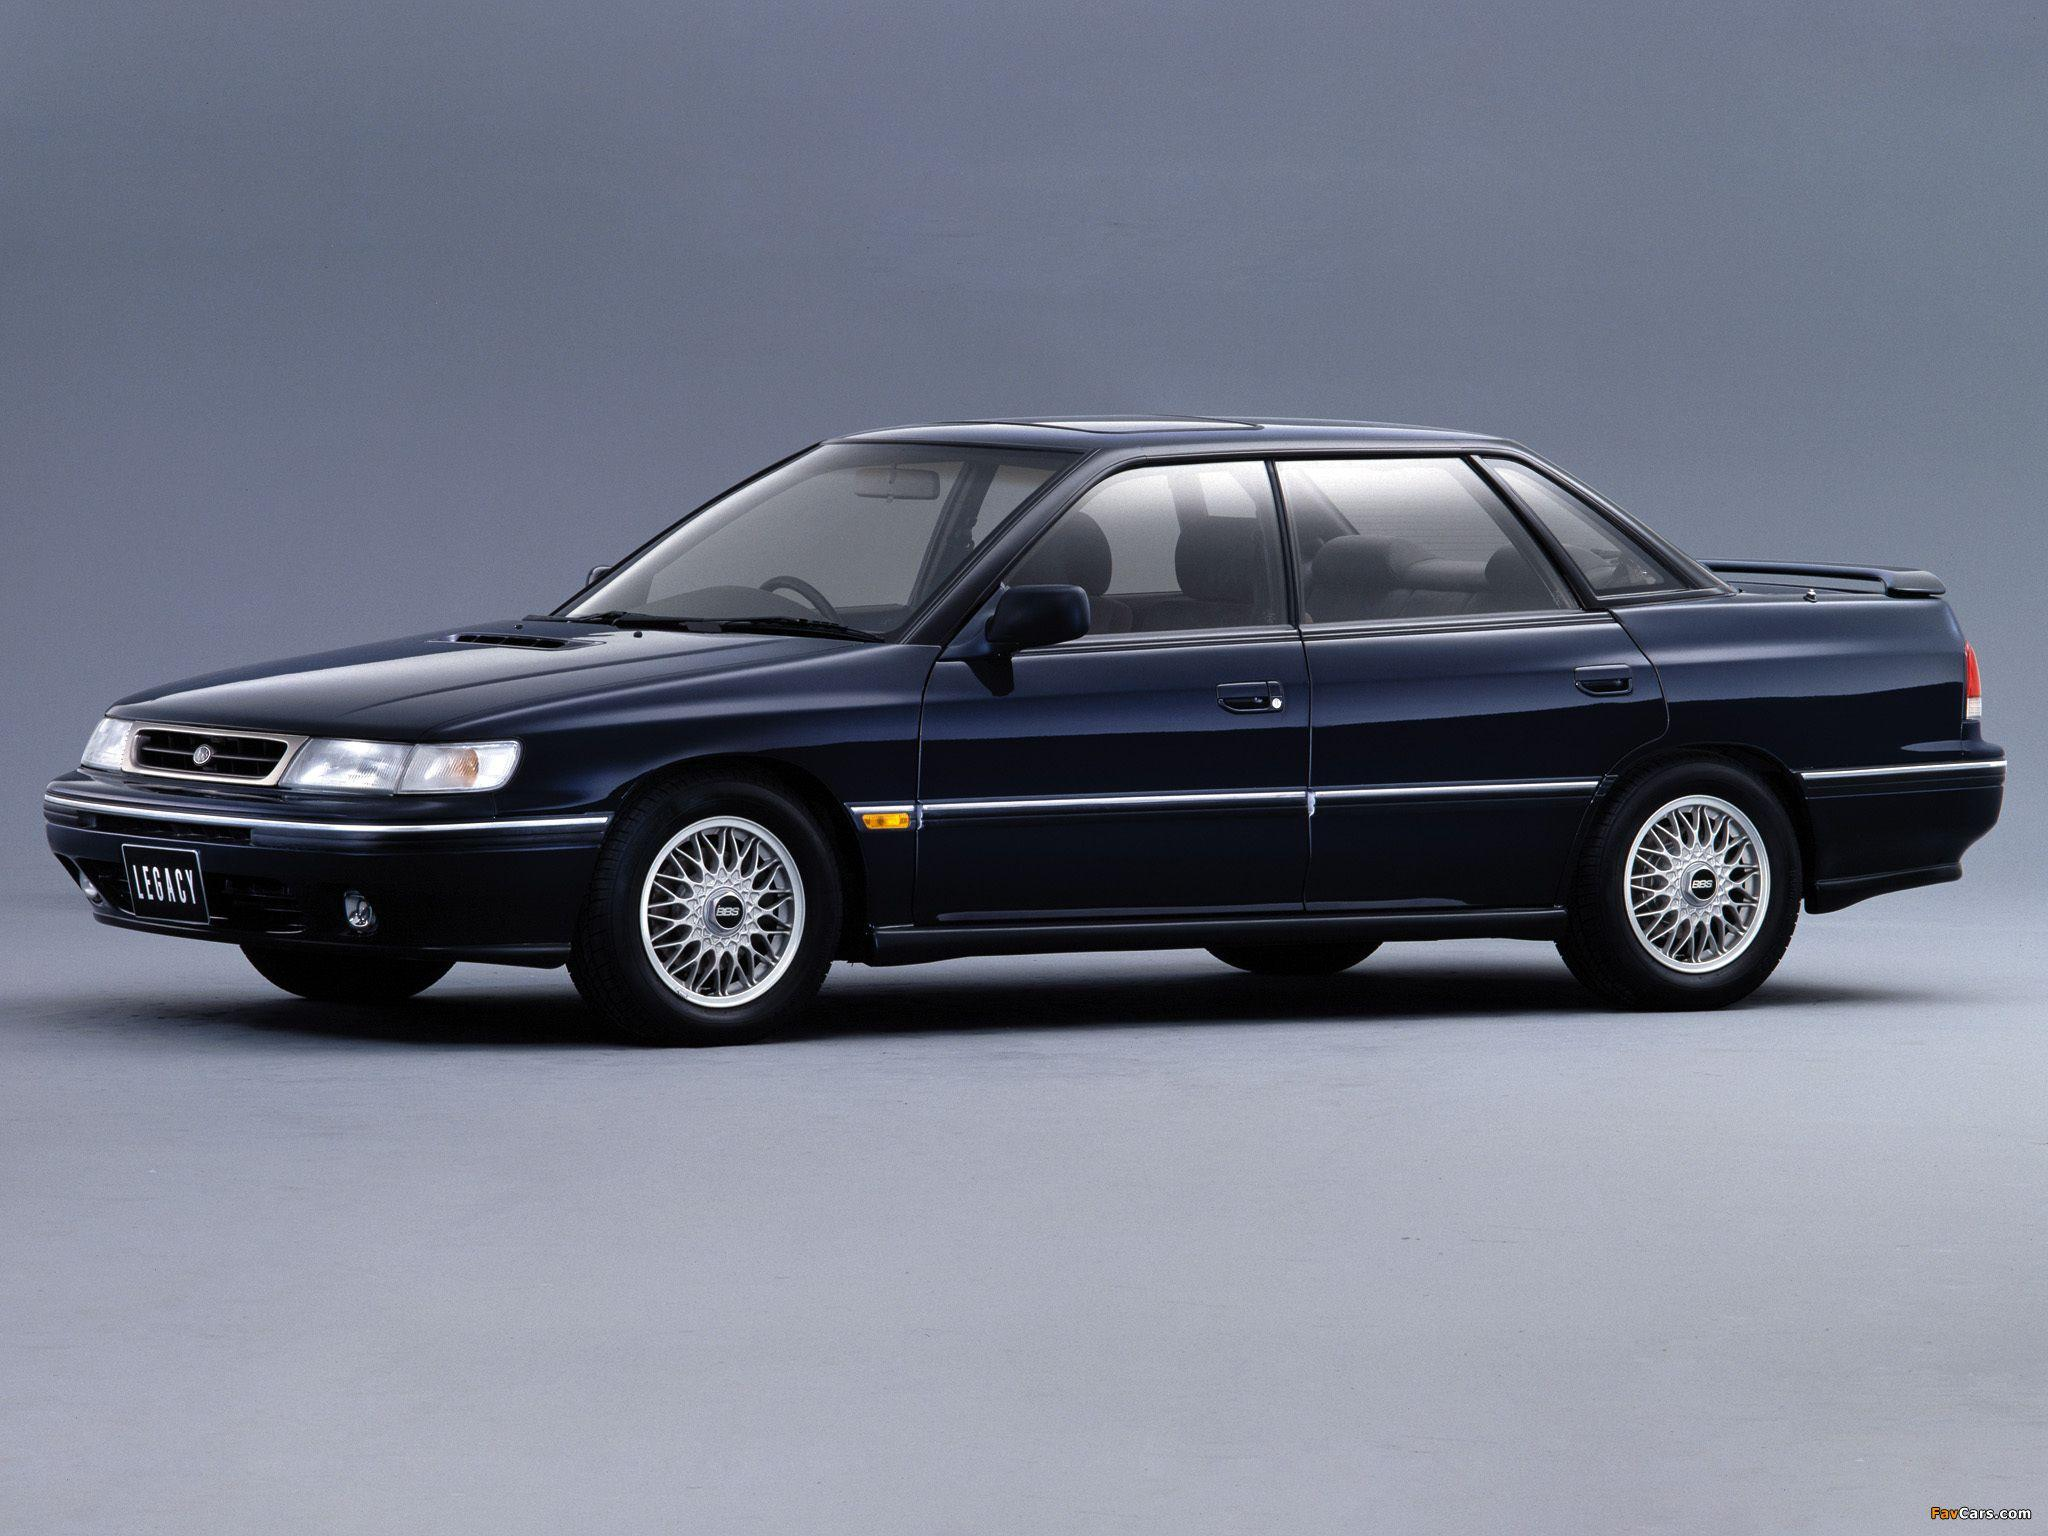 Subaru Legacy 2.0 GT Type S2 (BC) 1992–93 wallpapers (2048x1536)